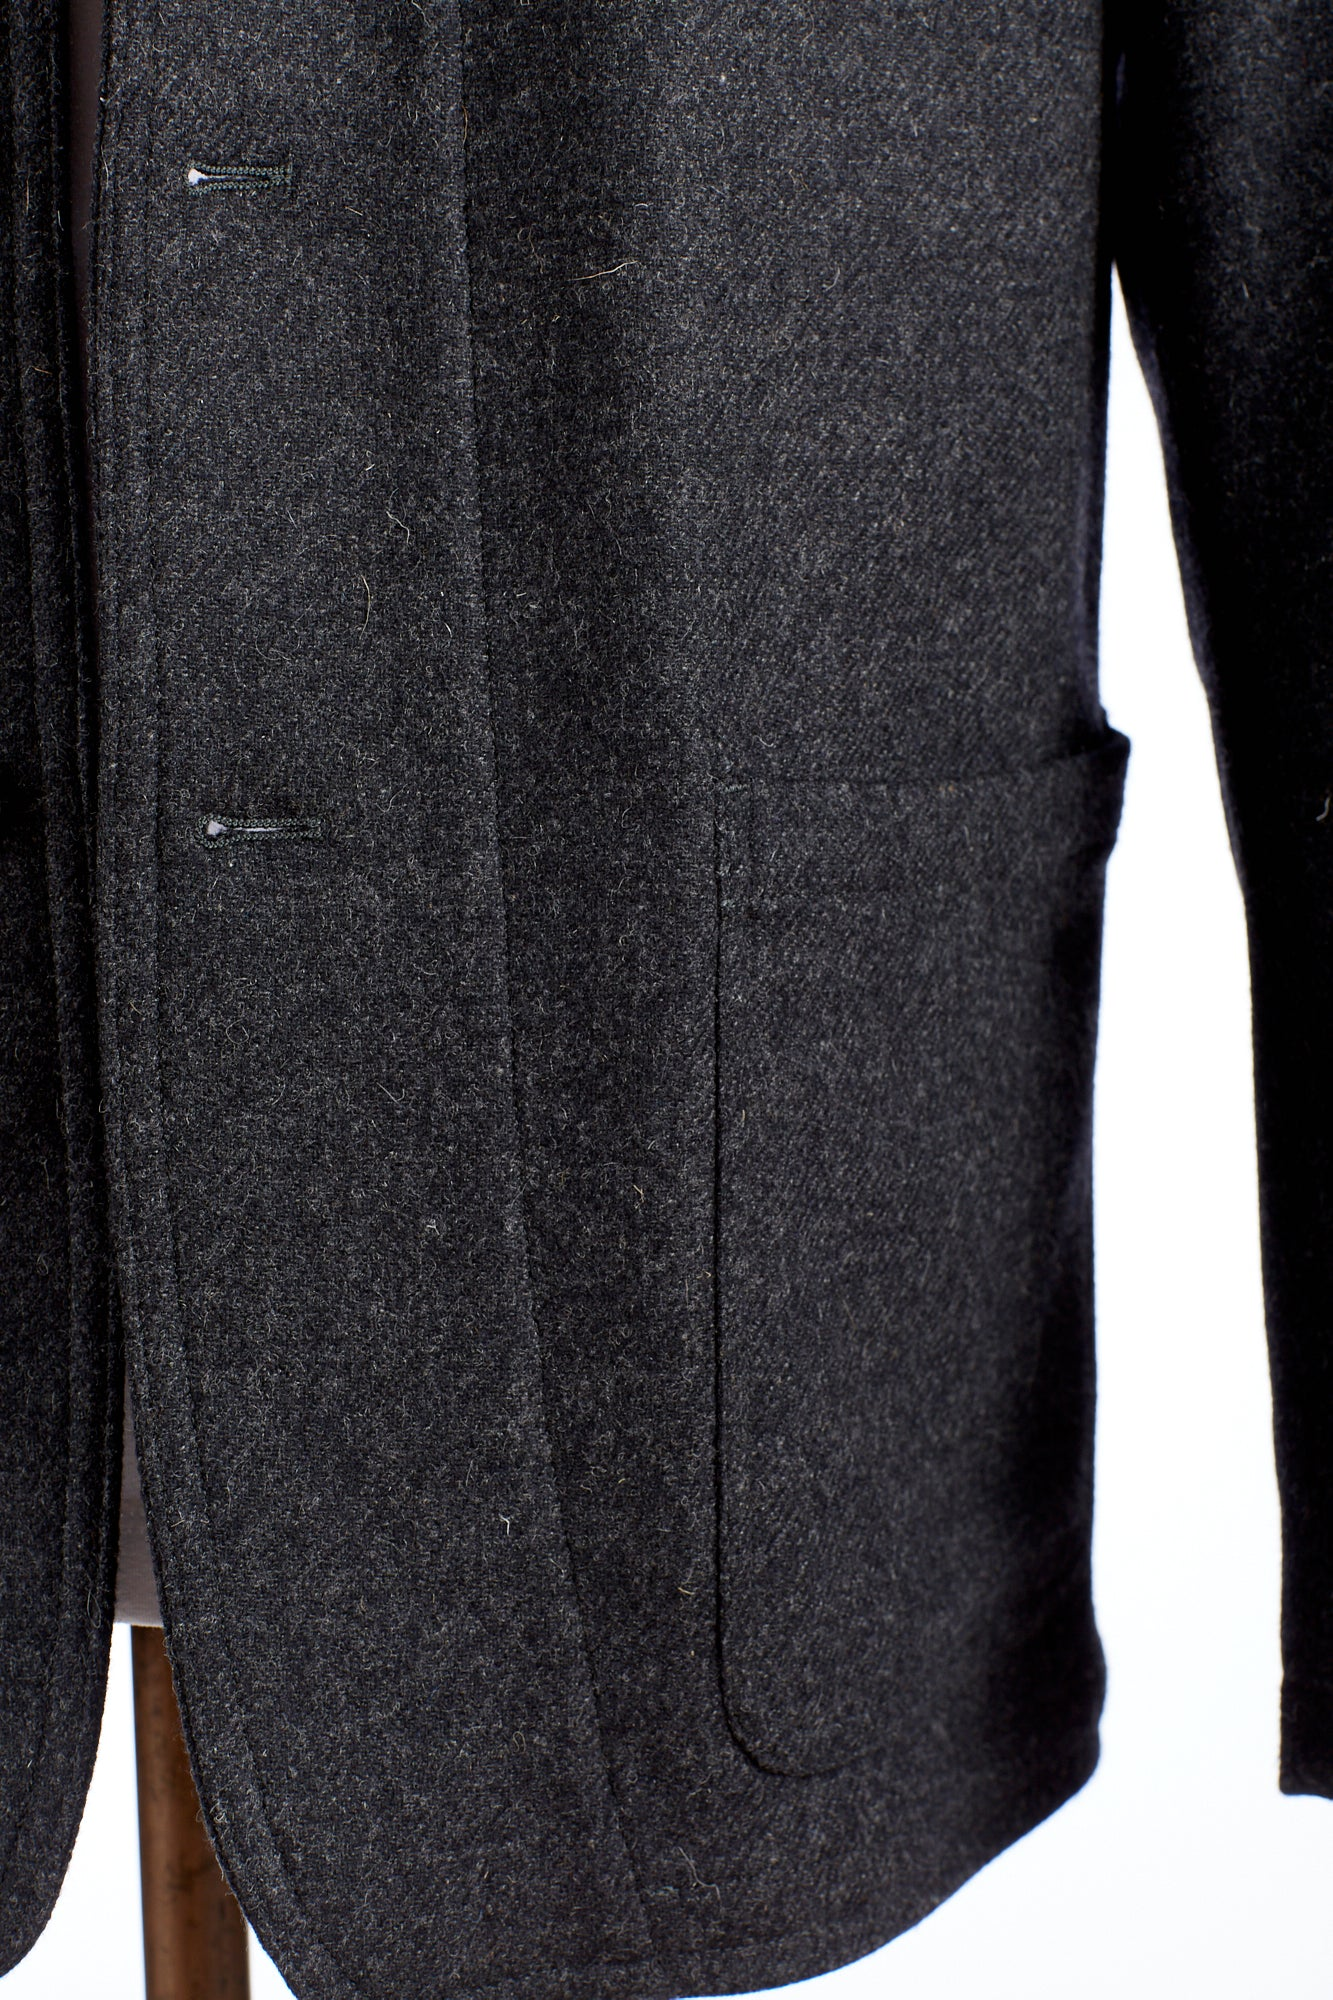 Private White V.C. Grey Wool Button-up Shacket Pocket